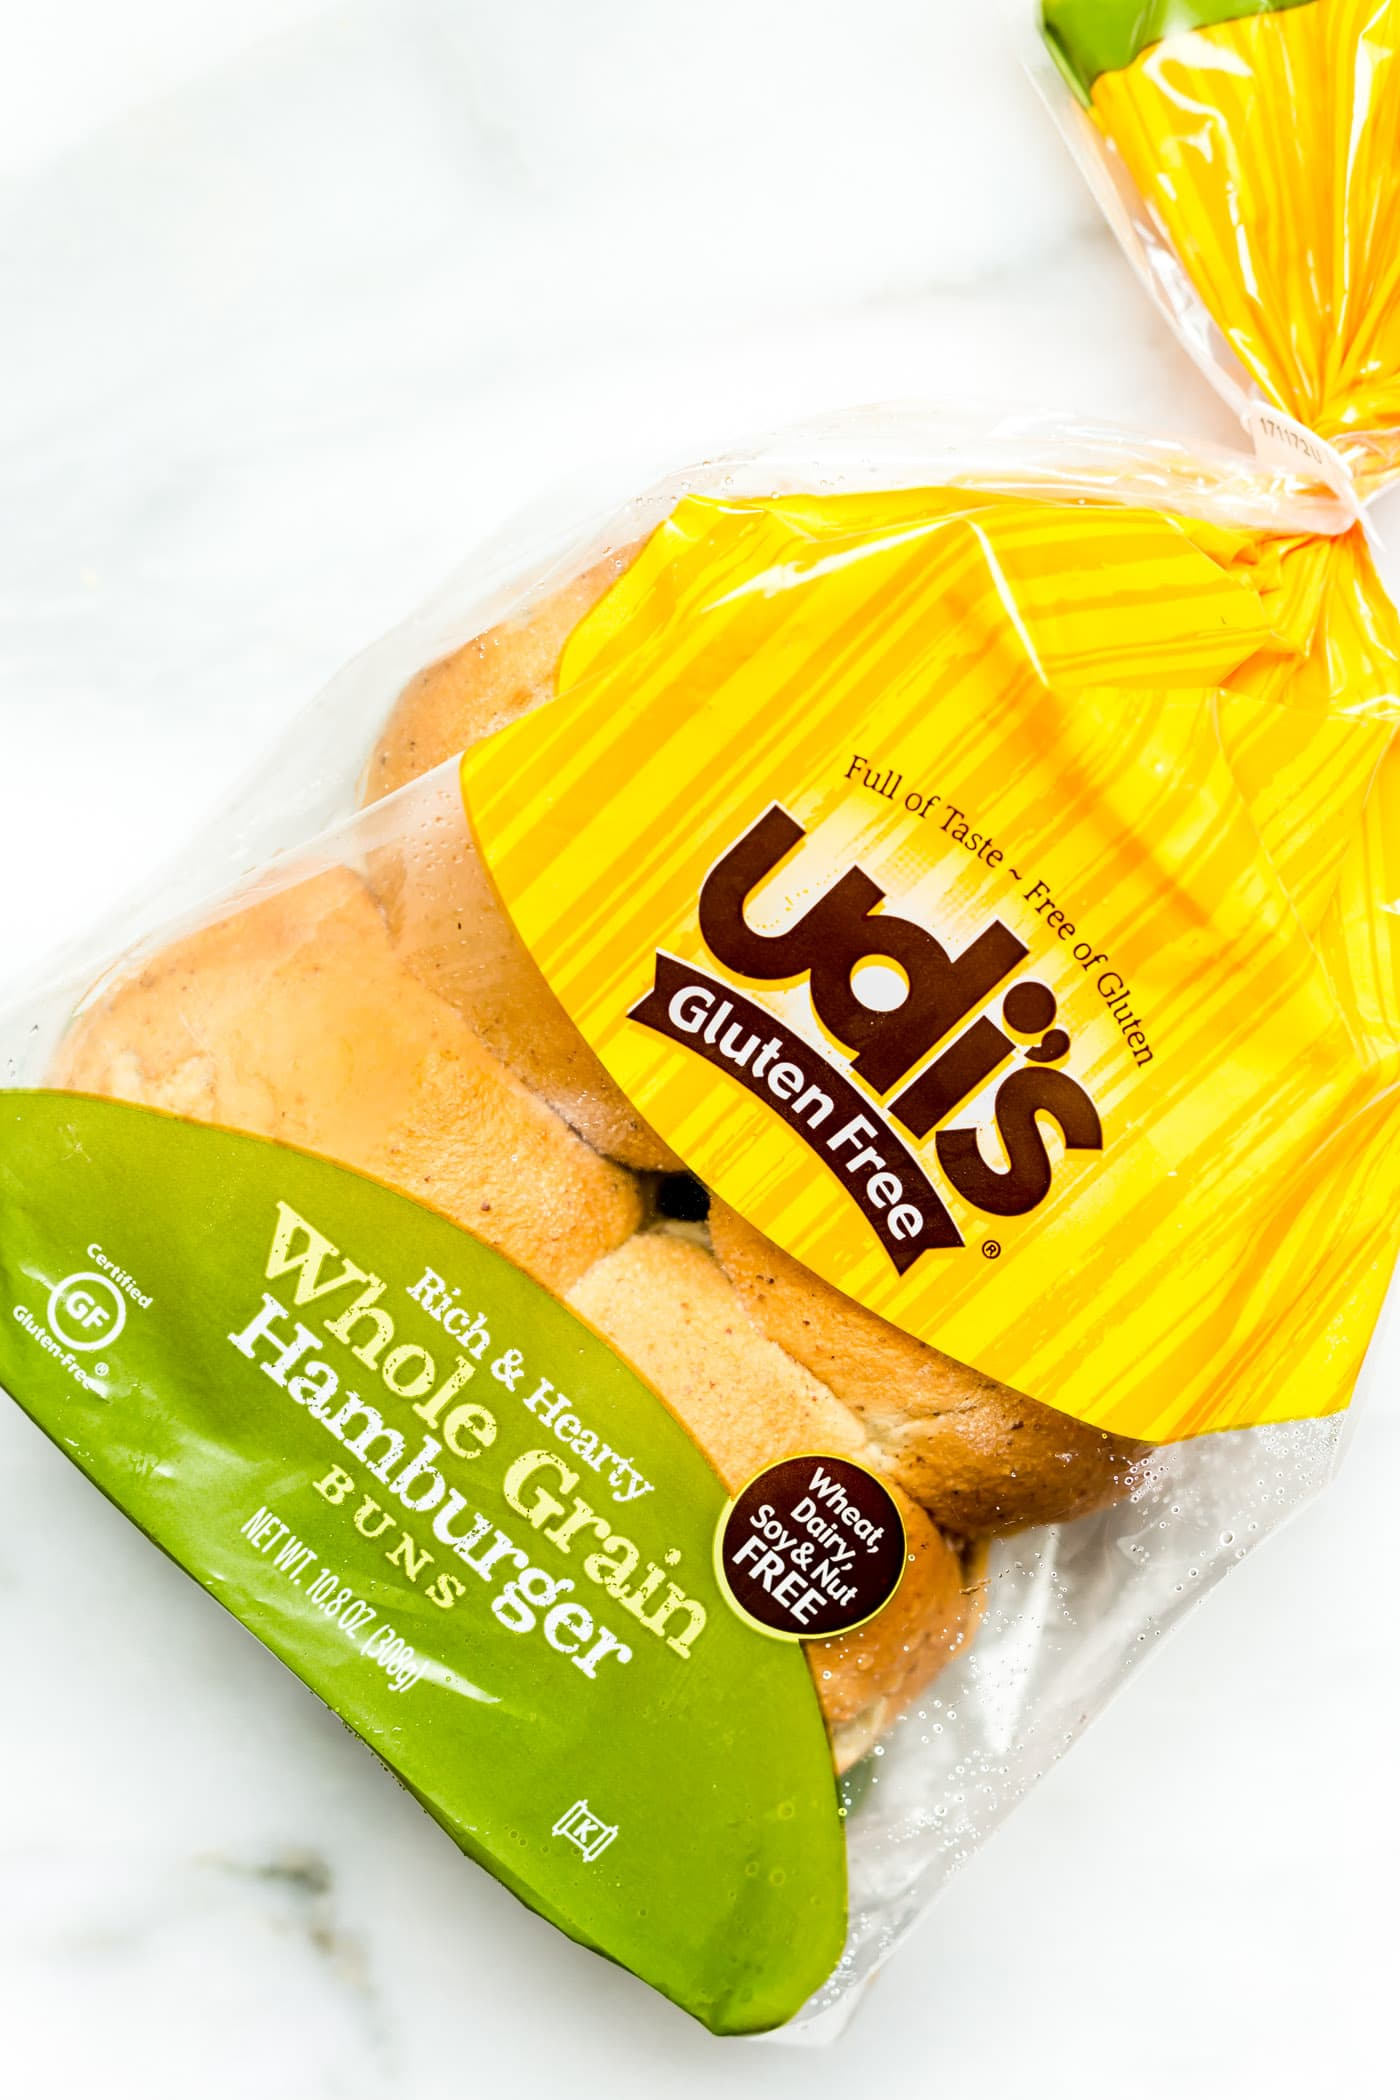 udis gluten free hamburger buns! Great for veggie burgers and more!